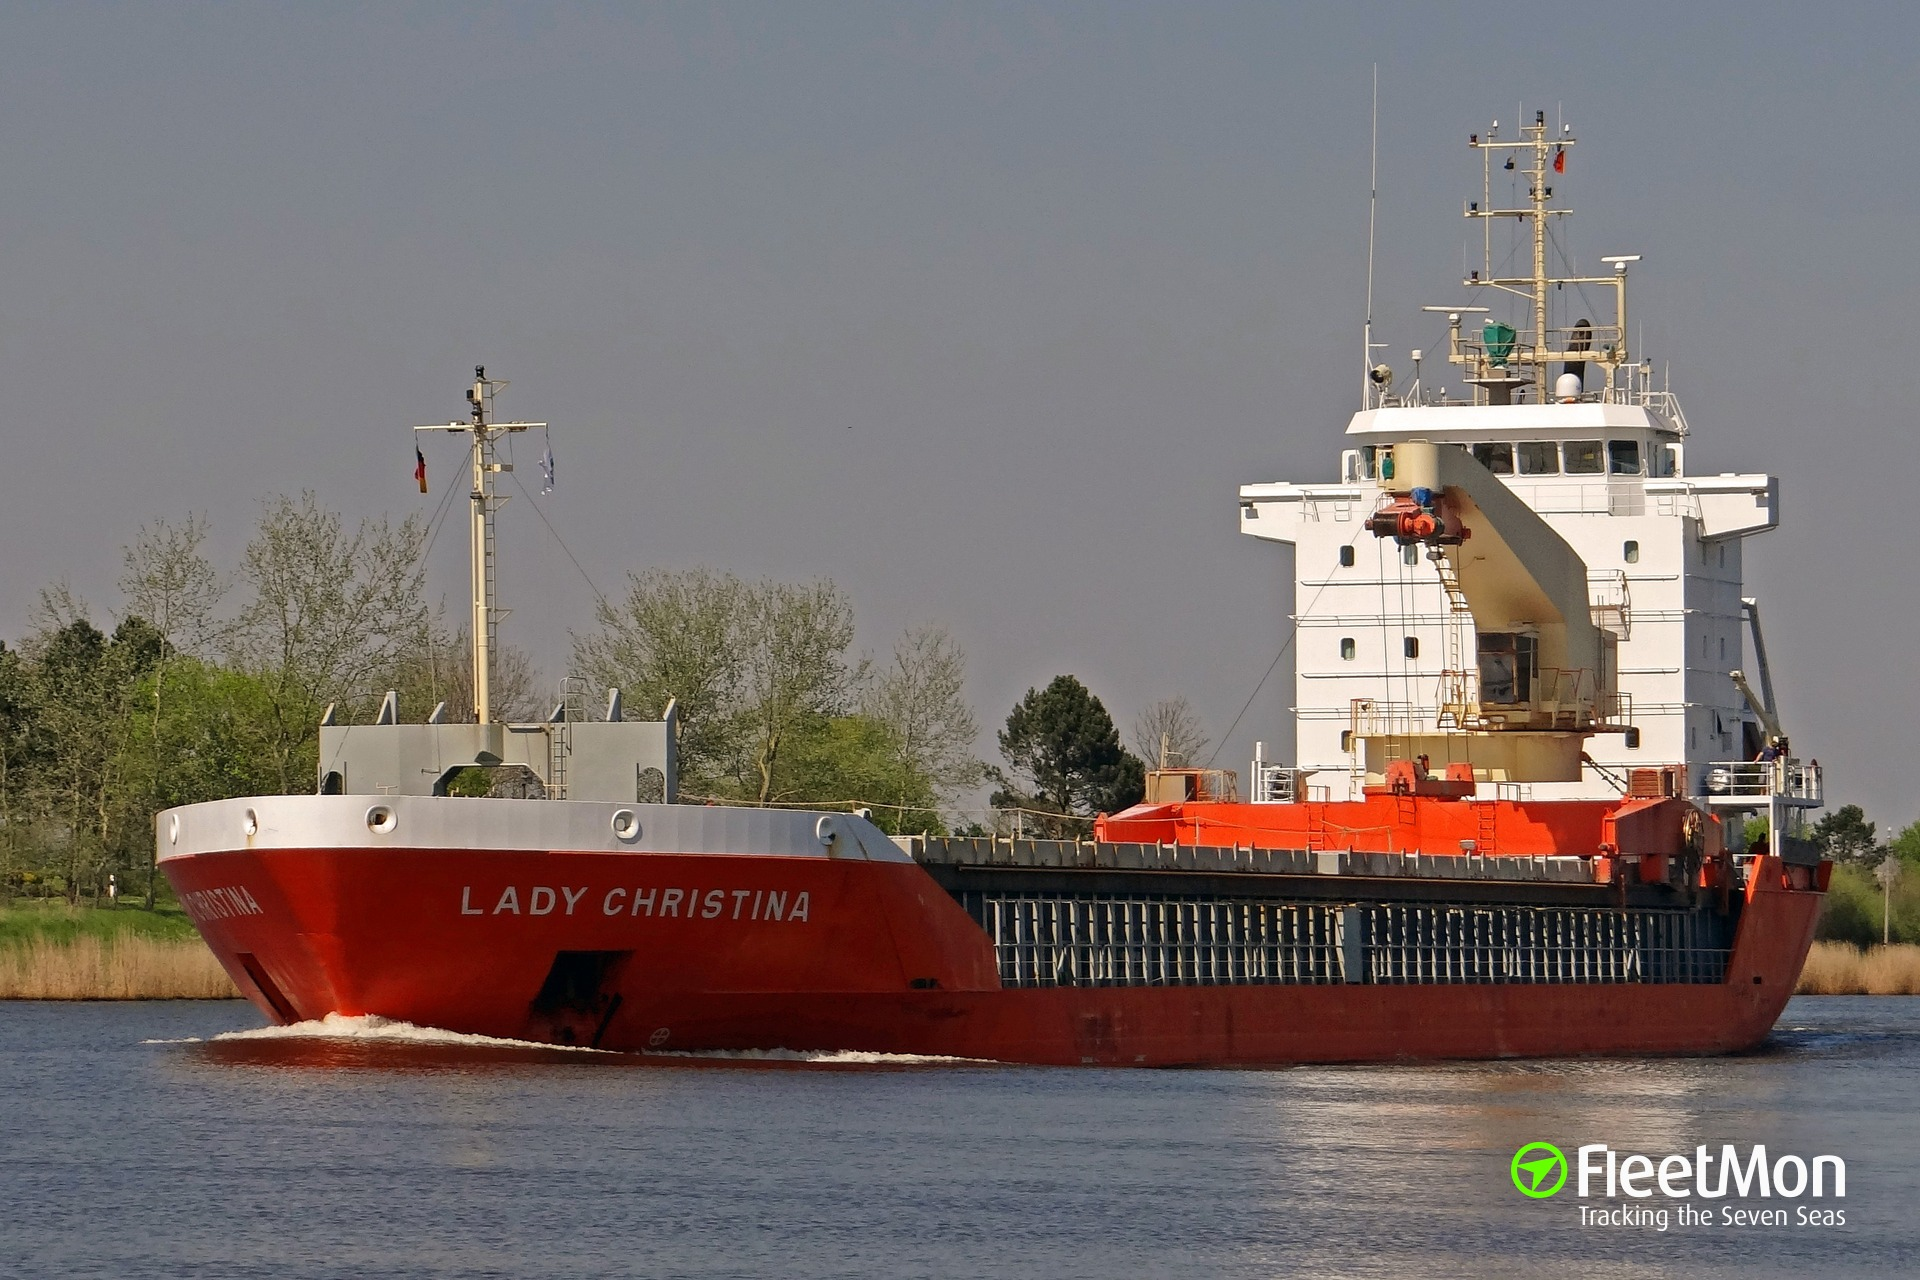 Crew crushed by hatch on Dutch cargo ship